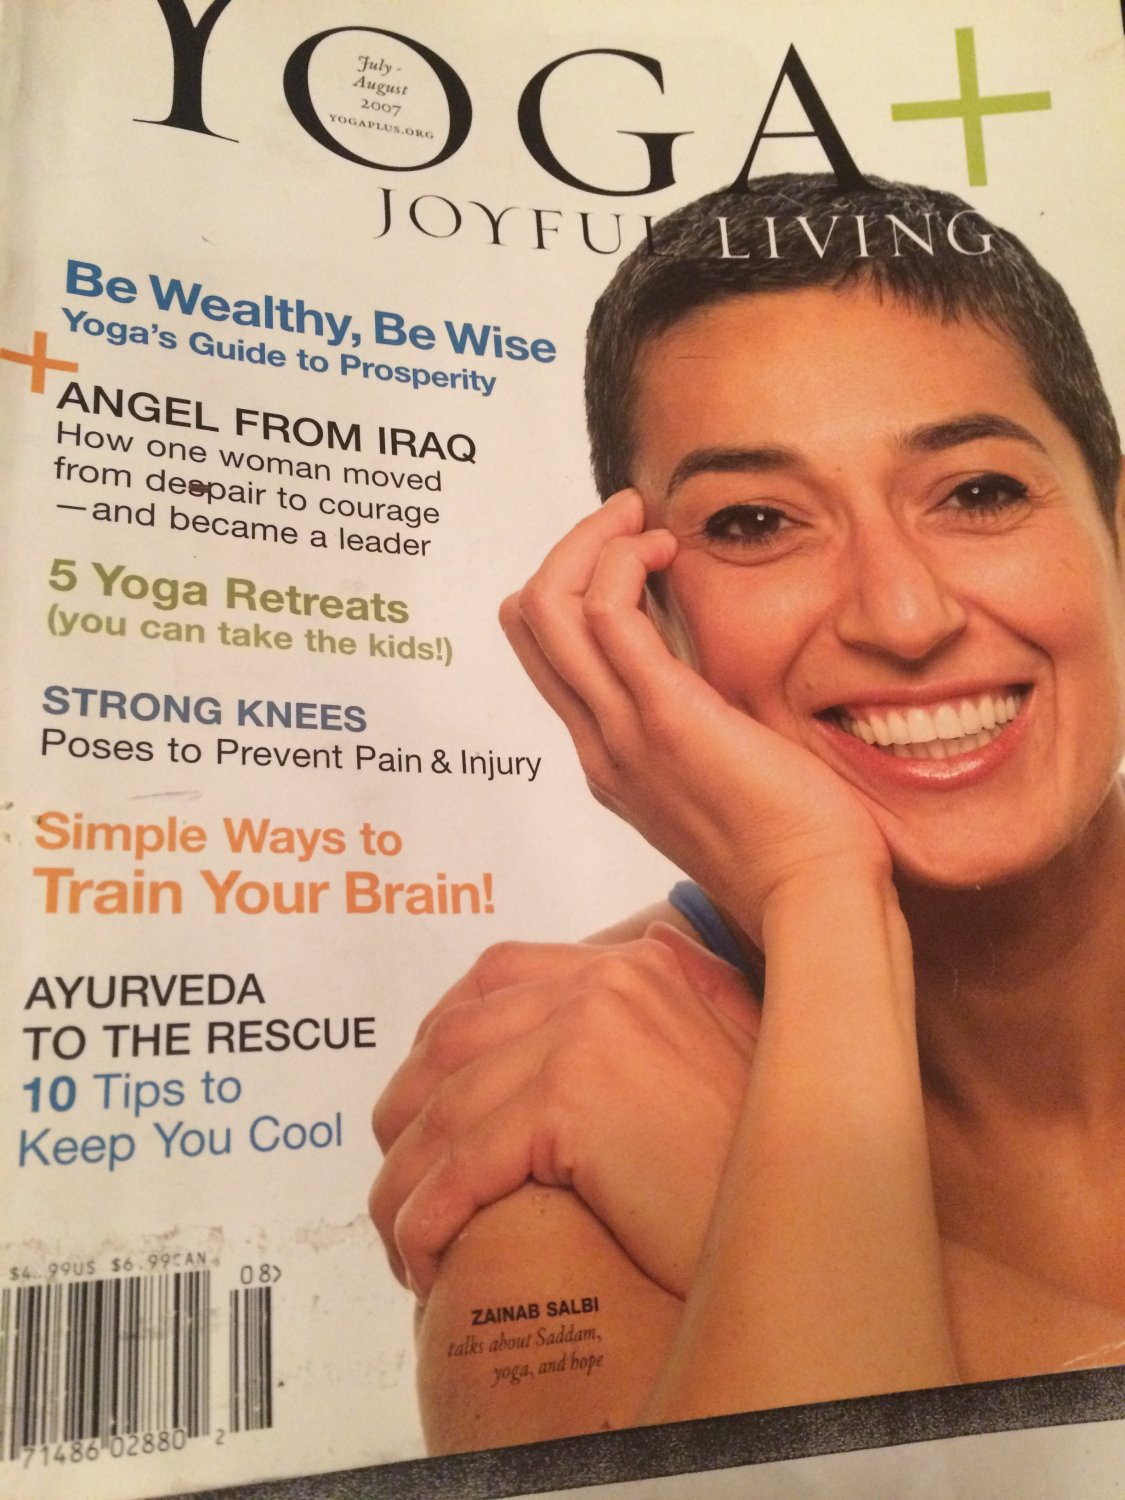 YOGA JOYFUL LIVING MAGAZINE, JULY - AUGUST 2007, #96, be wealthy, be wise, anger from Iraq